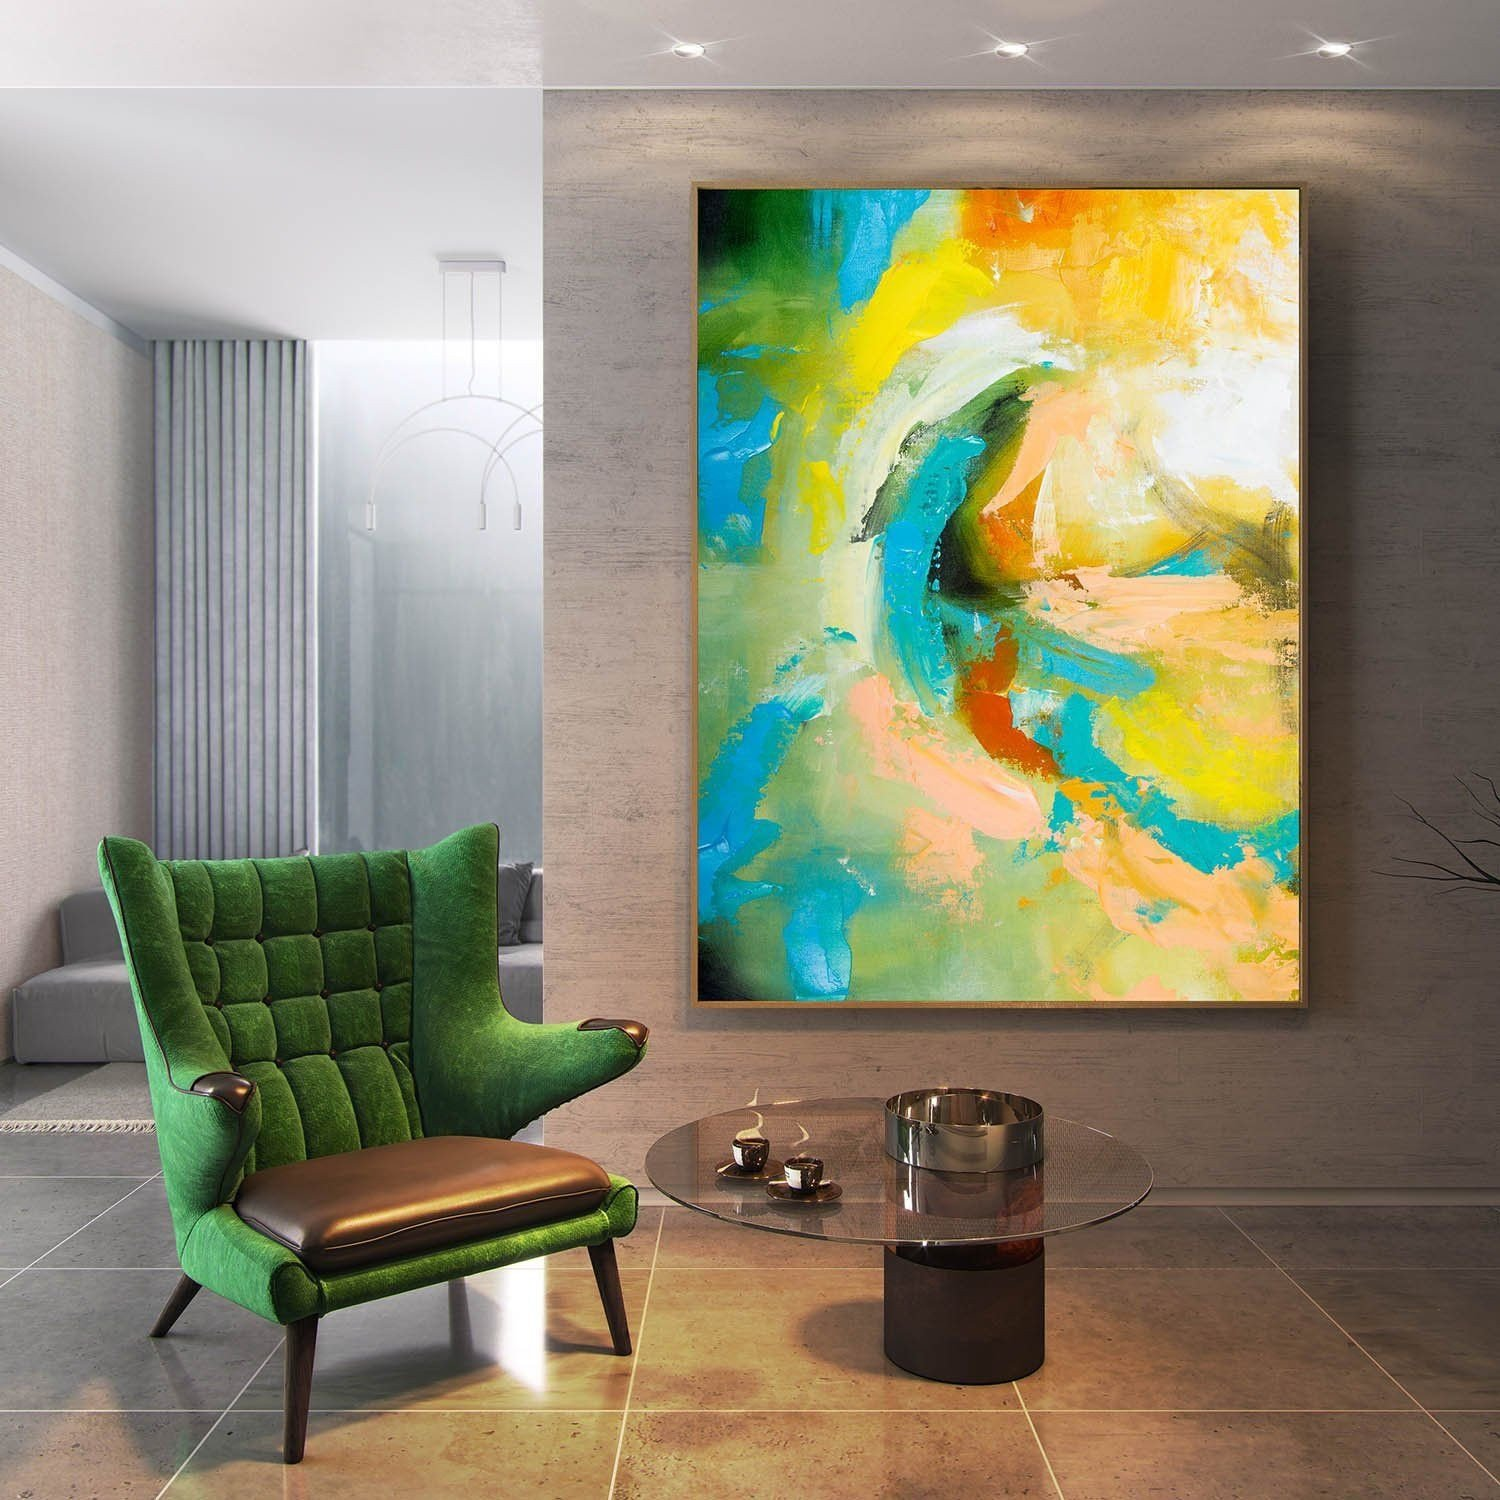 Artwork for Bedroom Wall Fresh original Paintings Handmade Paintings On Canvas Huge